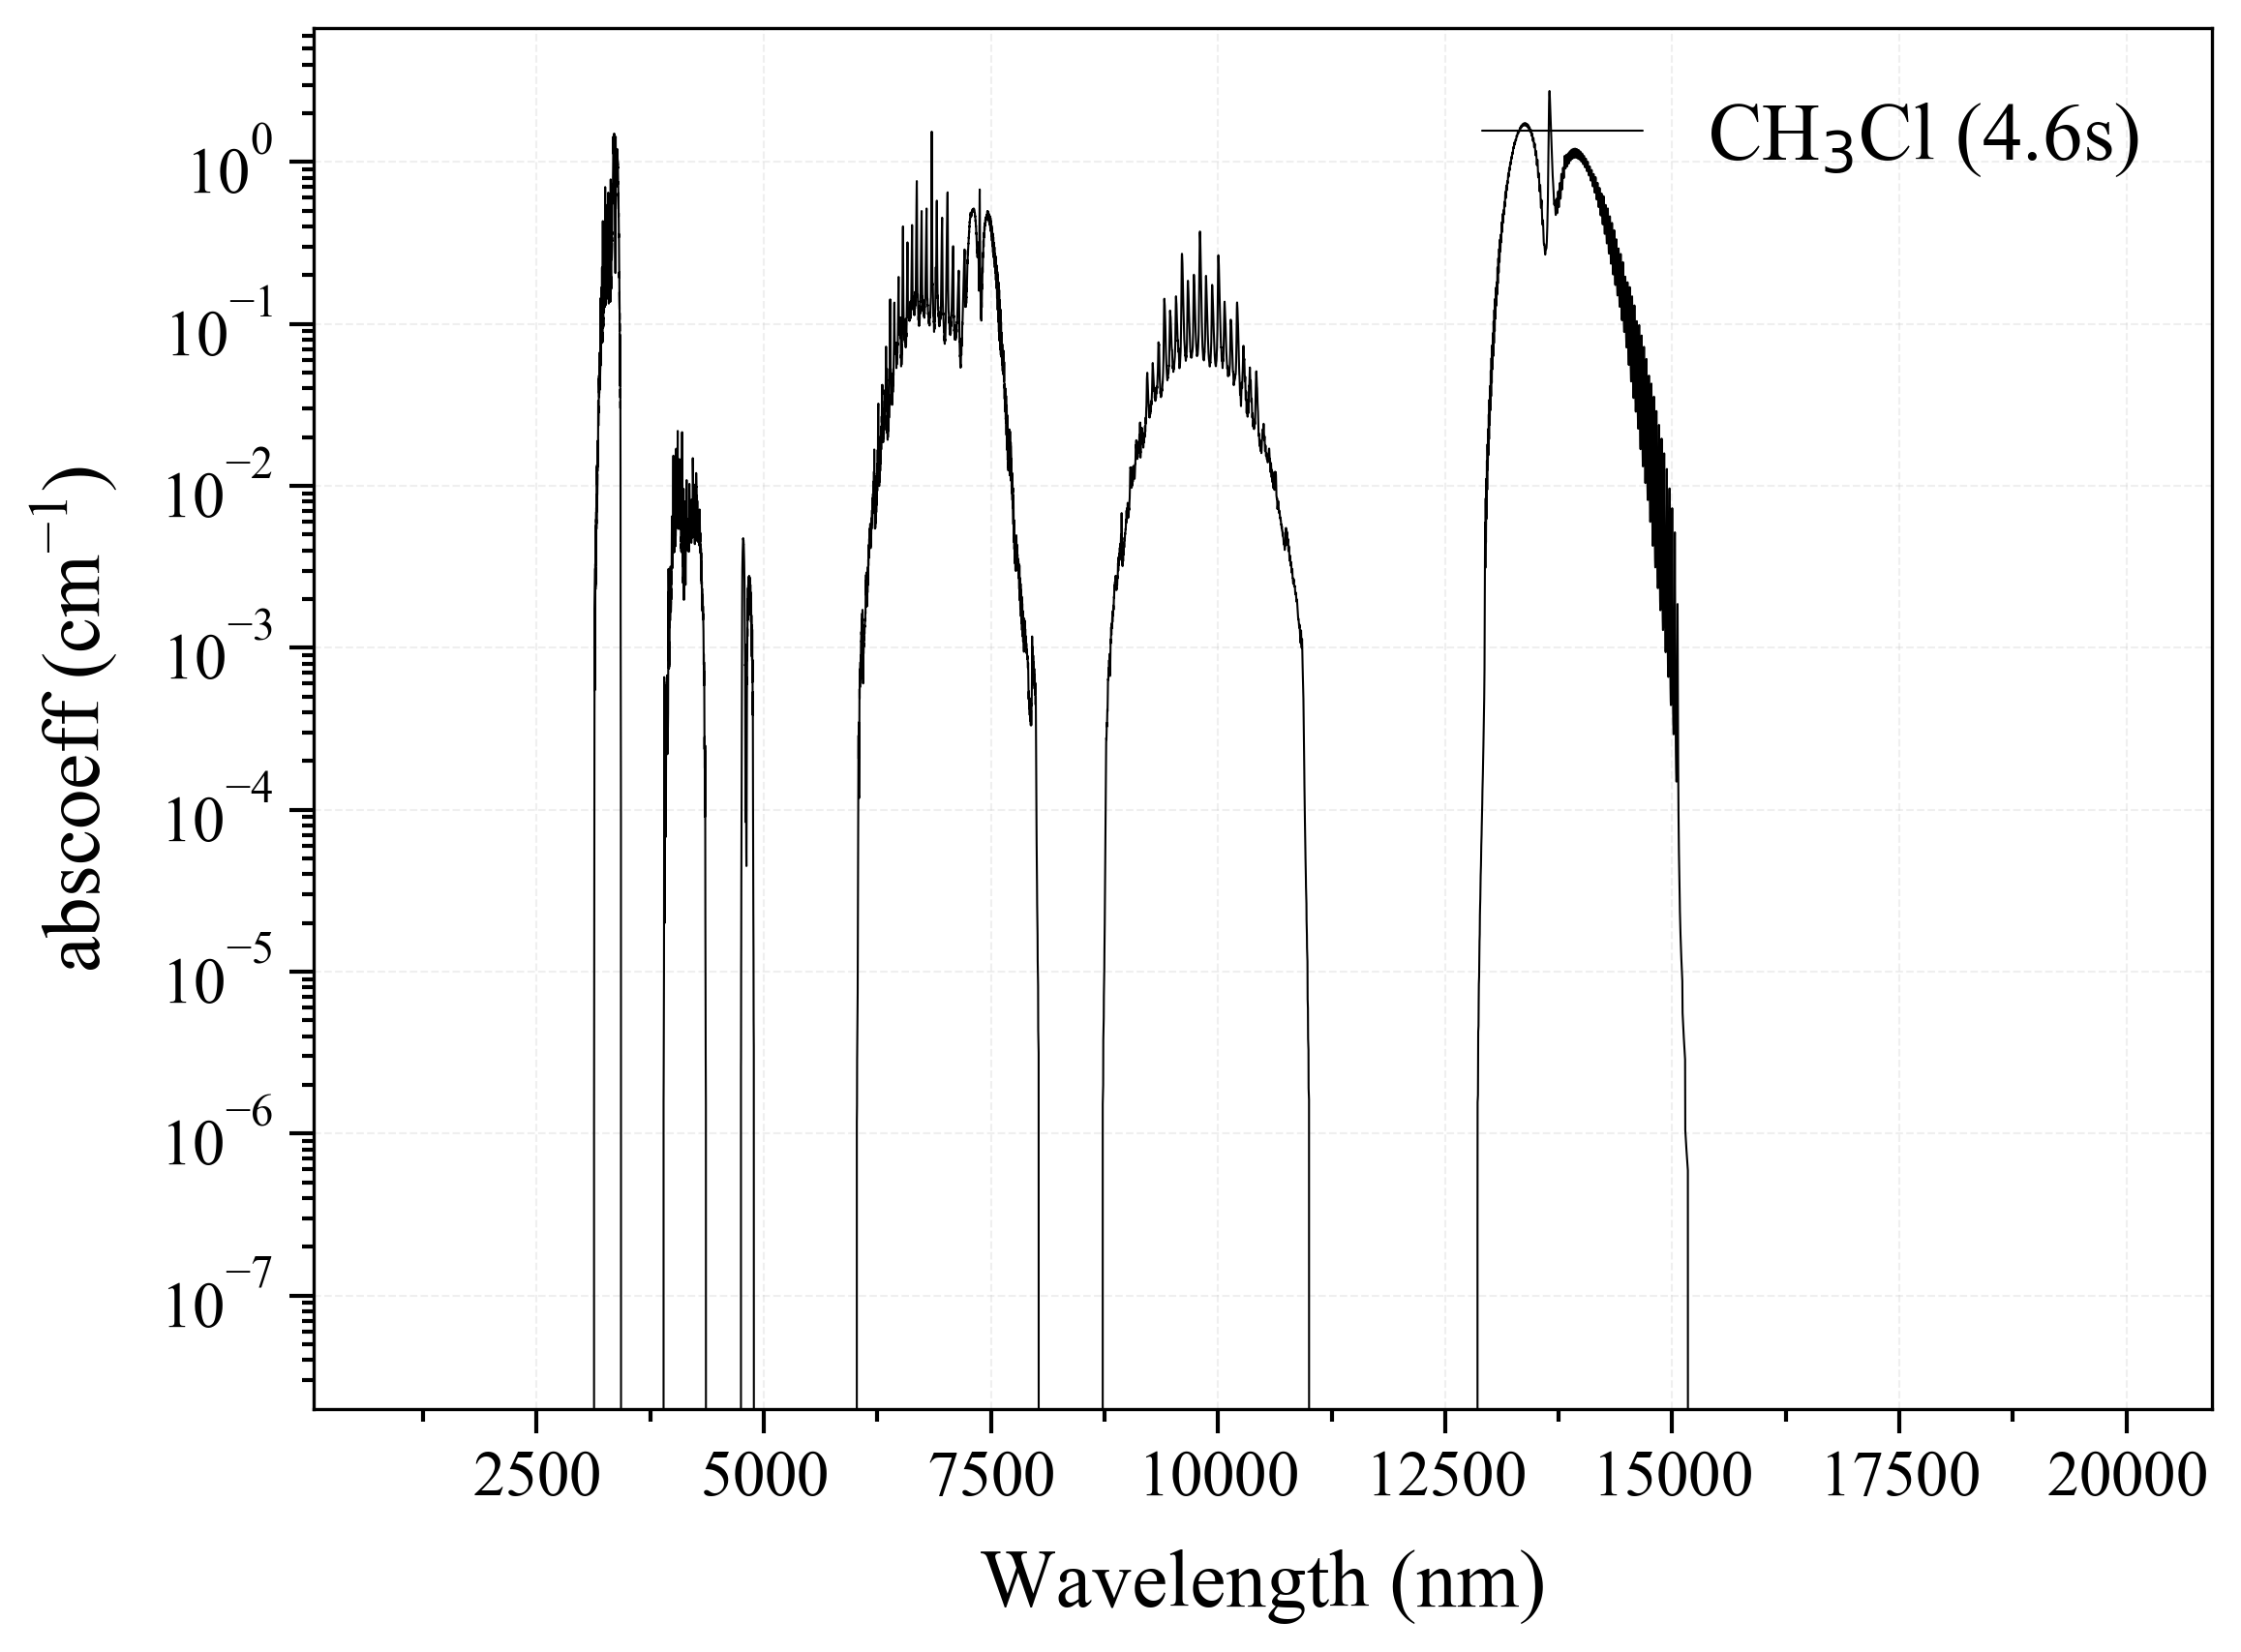 Methyl Chloride CH3Cl infrared absorption coefficient